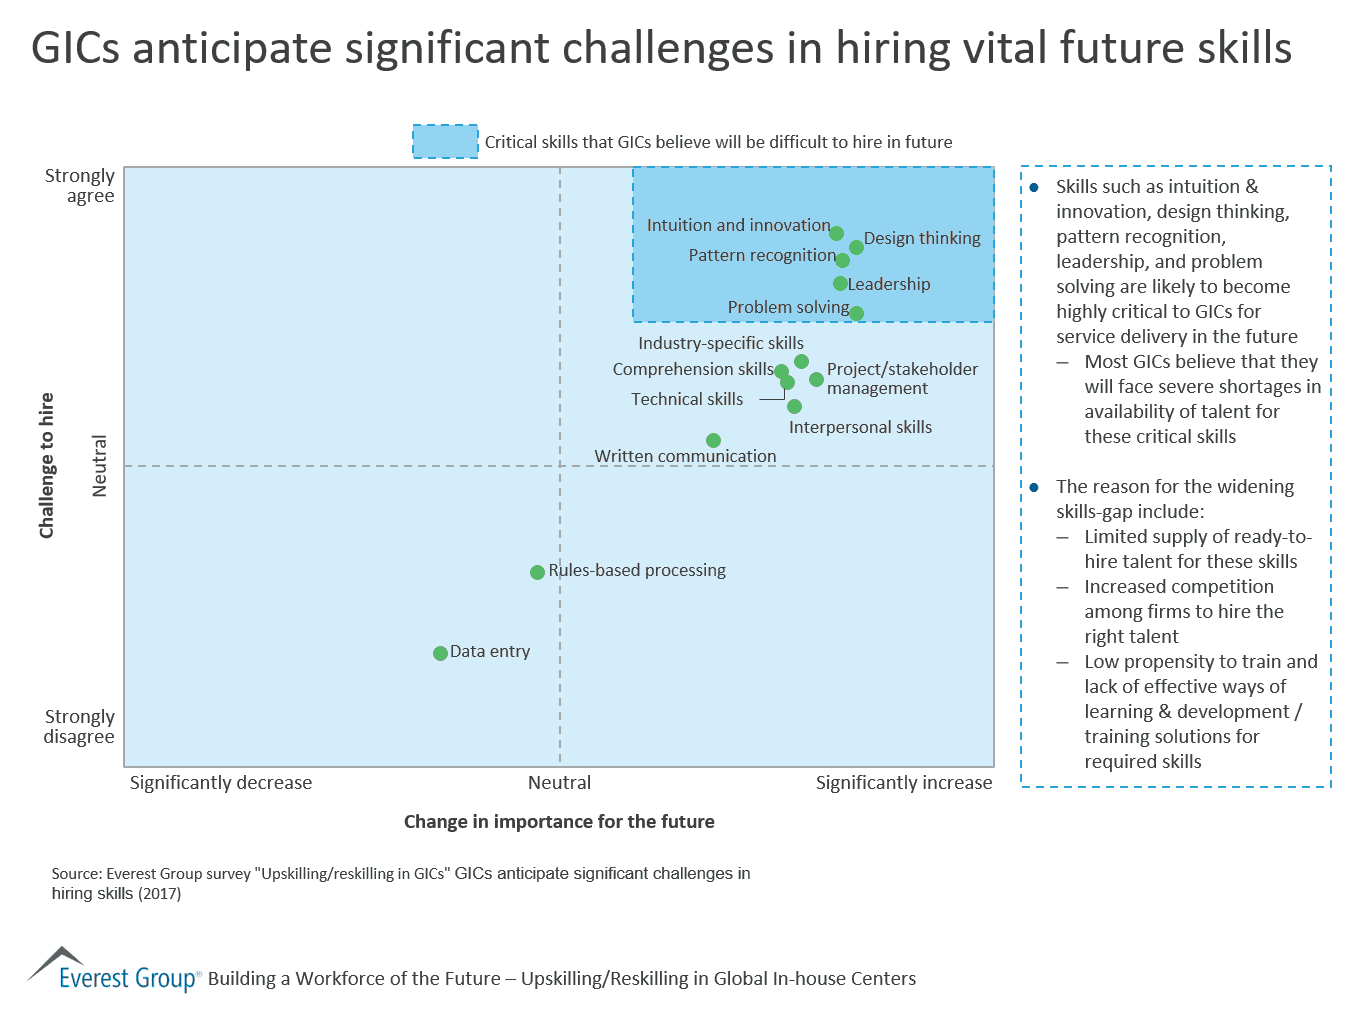 GICs Anticipate Significant Challenges in Hiring Vital